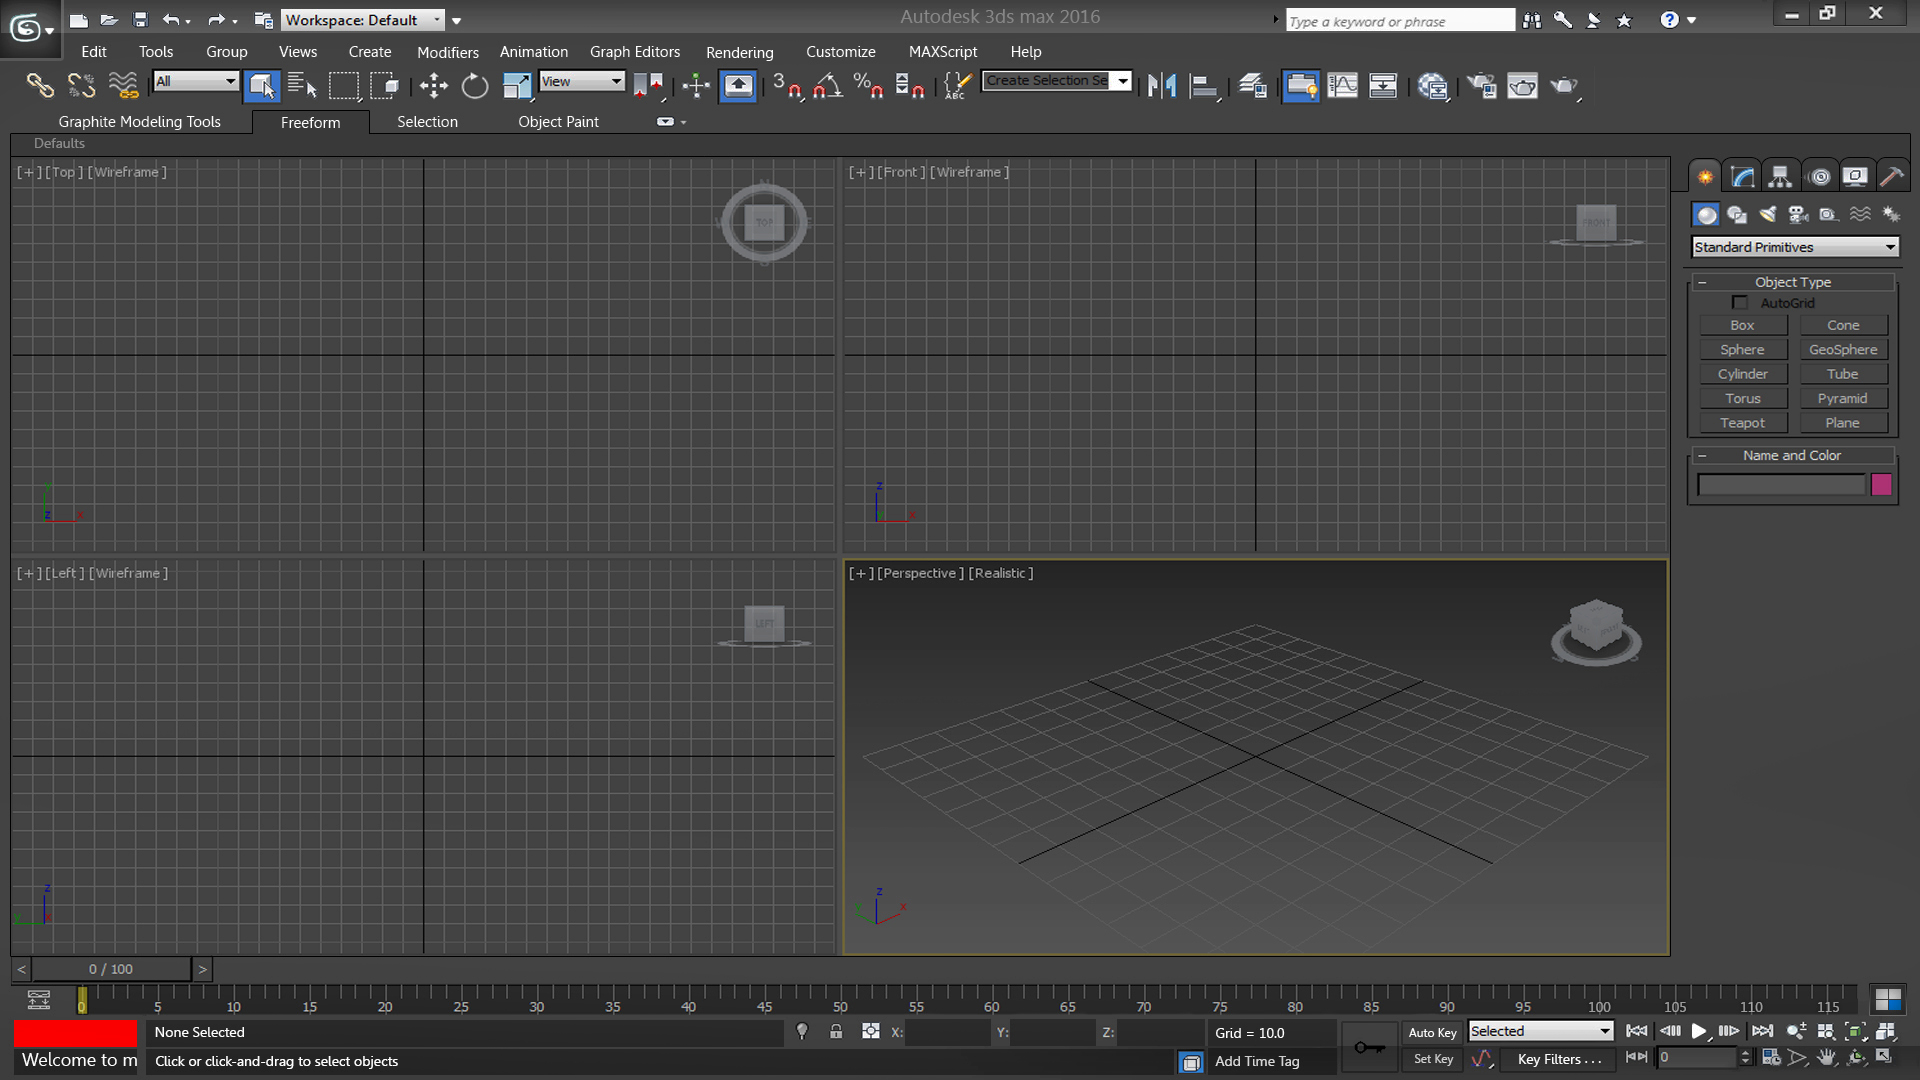 3ds max 2014 provides new tools to attract crowds